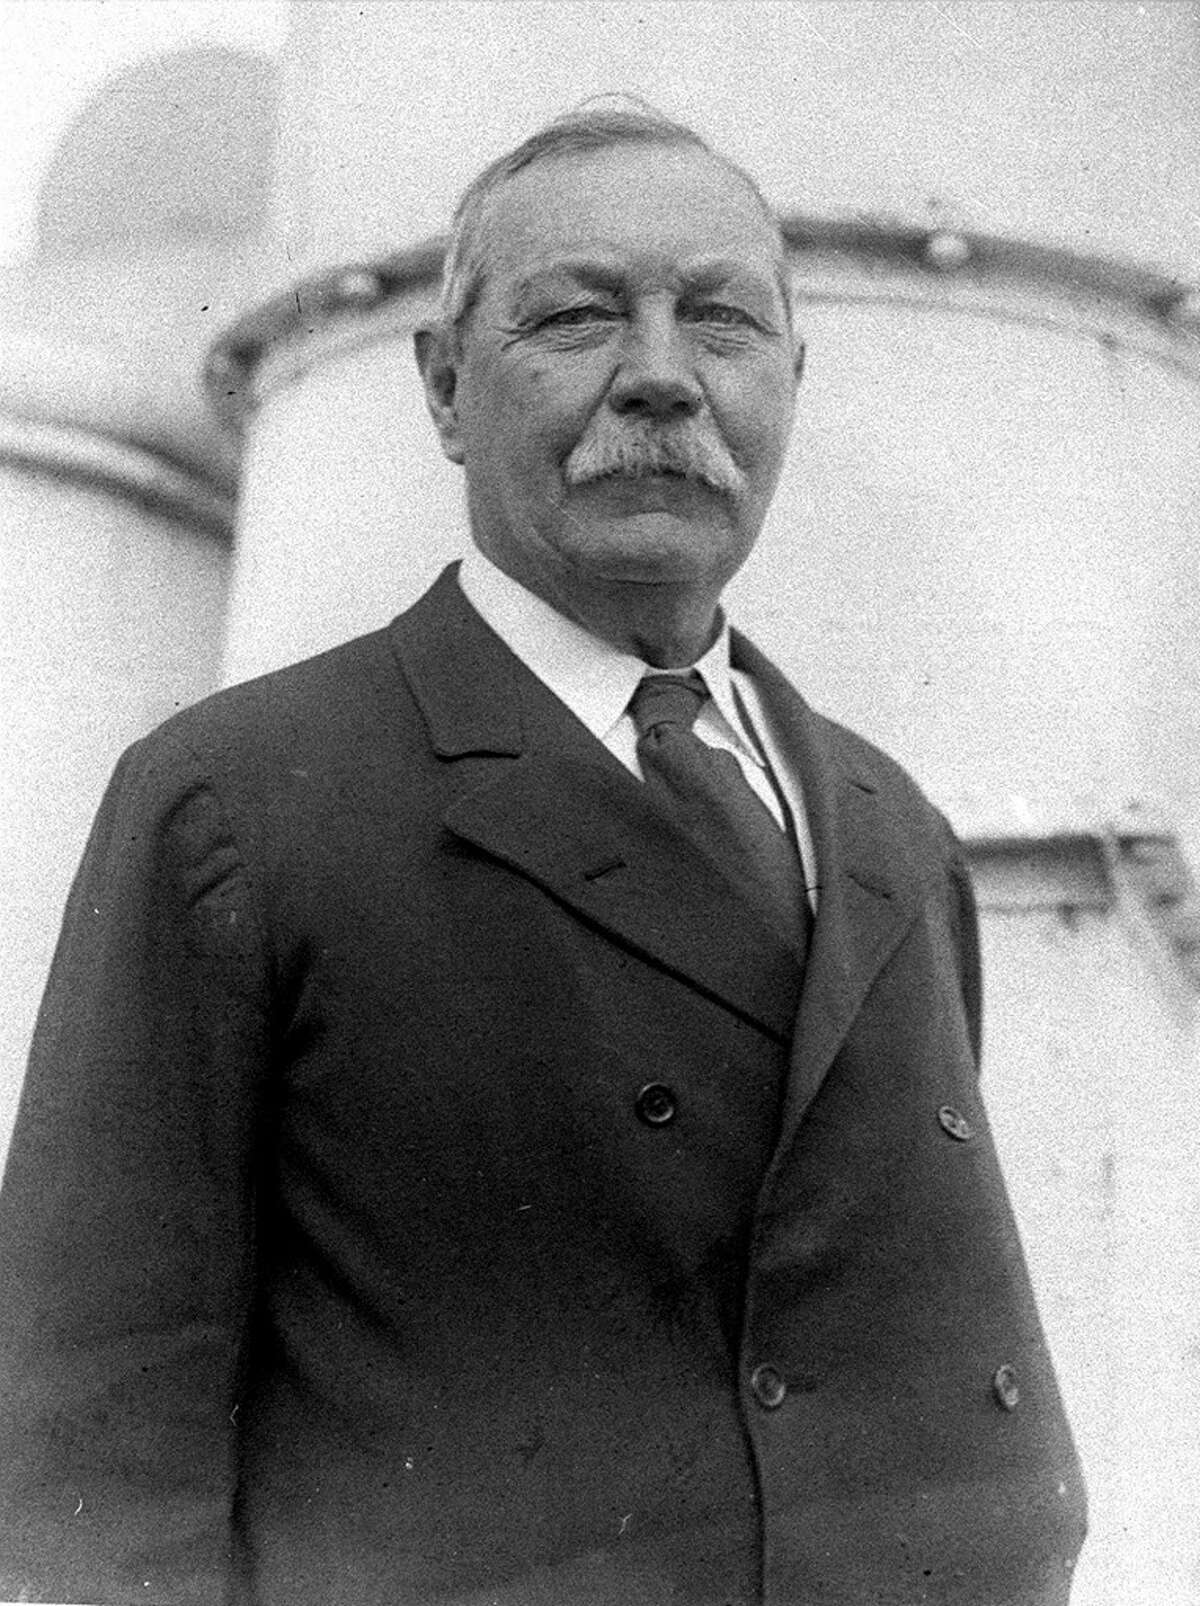 Sir Arthur Conan Doyle, the creator of the detective character Sherlock Holmes, is shown in an April 1923 photo. (Associated Press Photo/File)